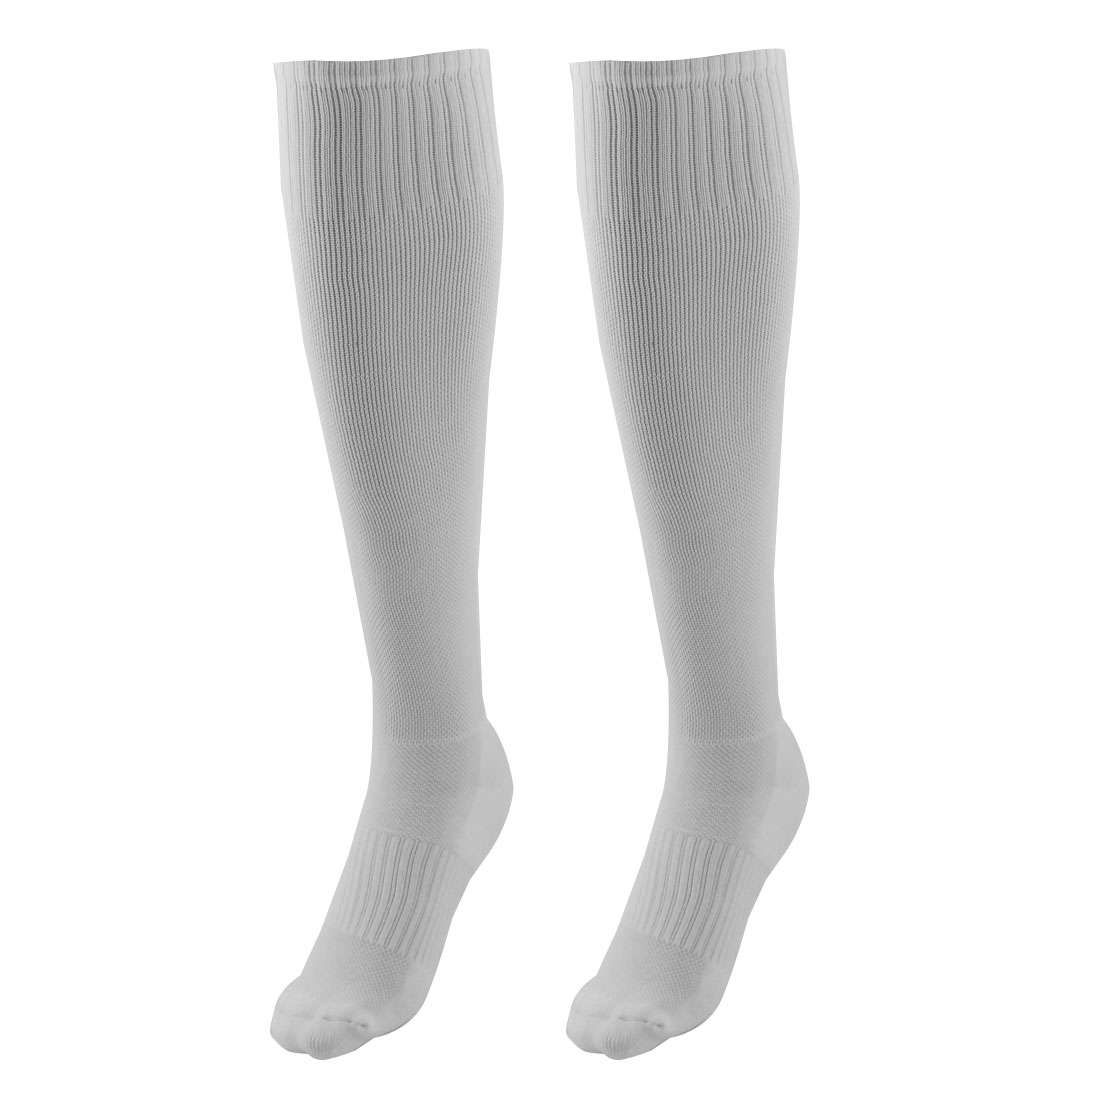 Adult Cotton Blends Knee High Style Hockey Rugby Soccer Football Sports Long Socks White Pair